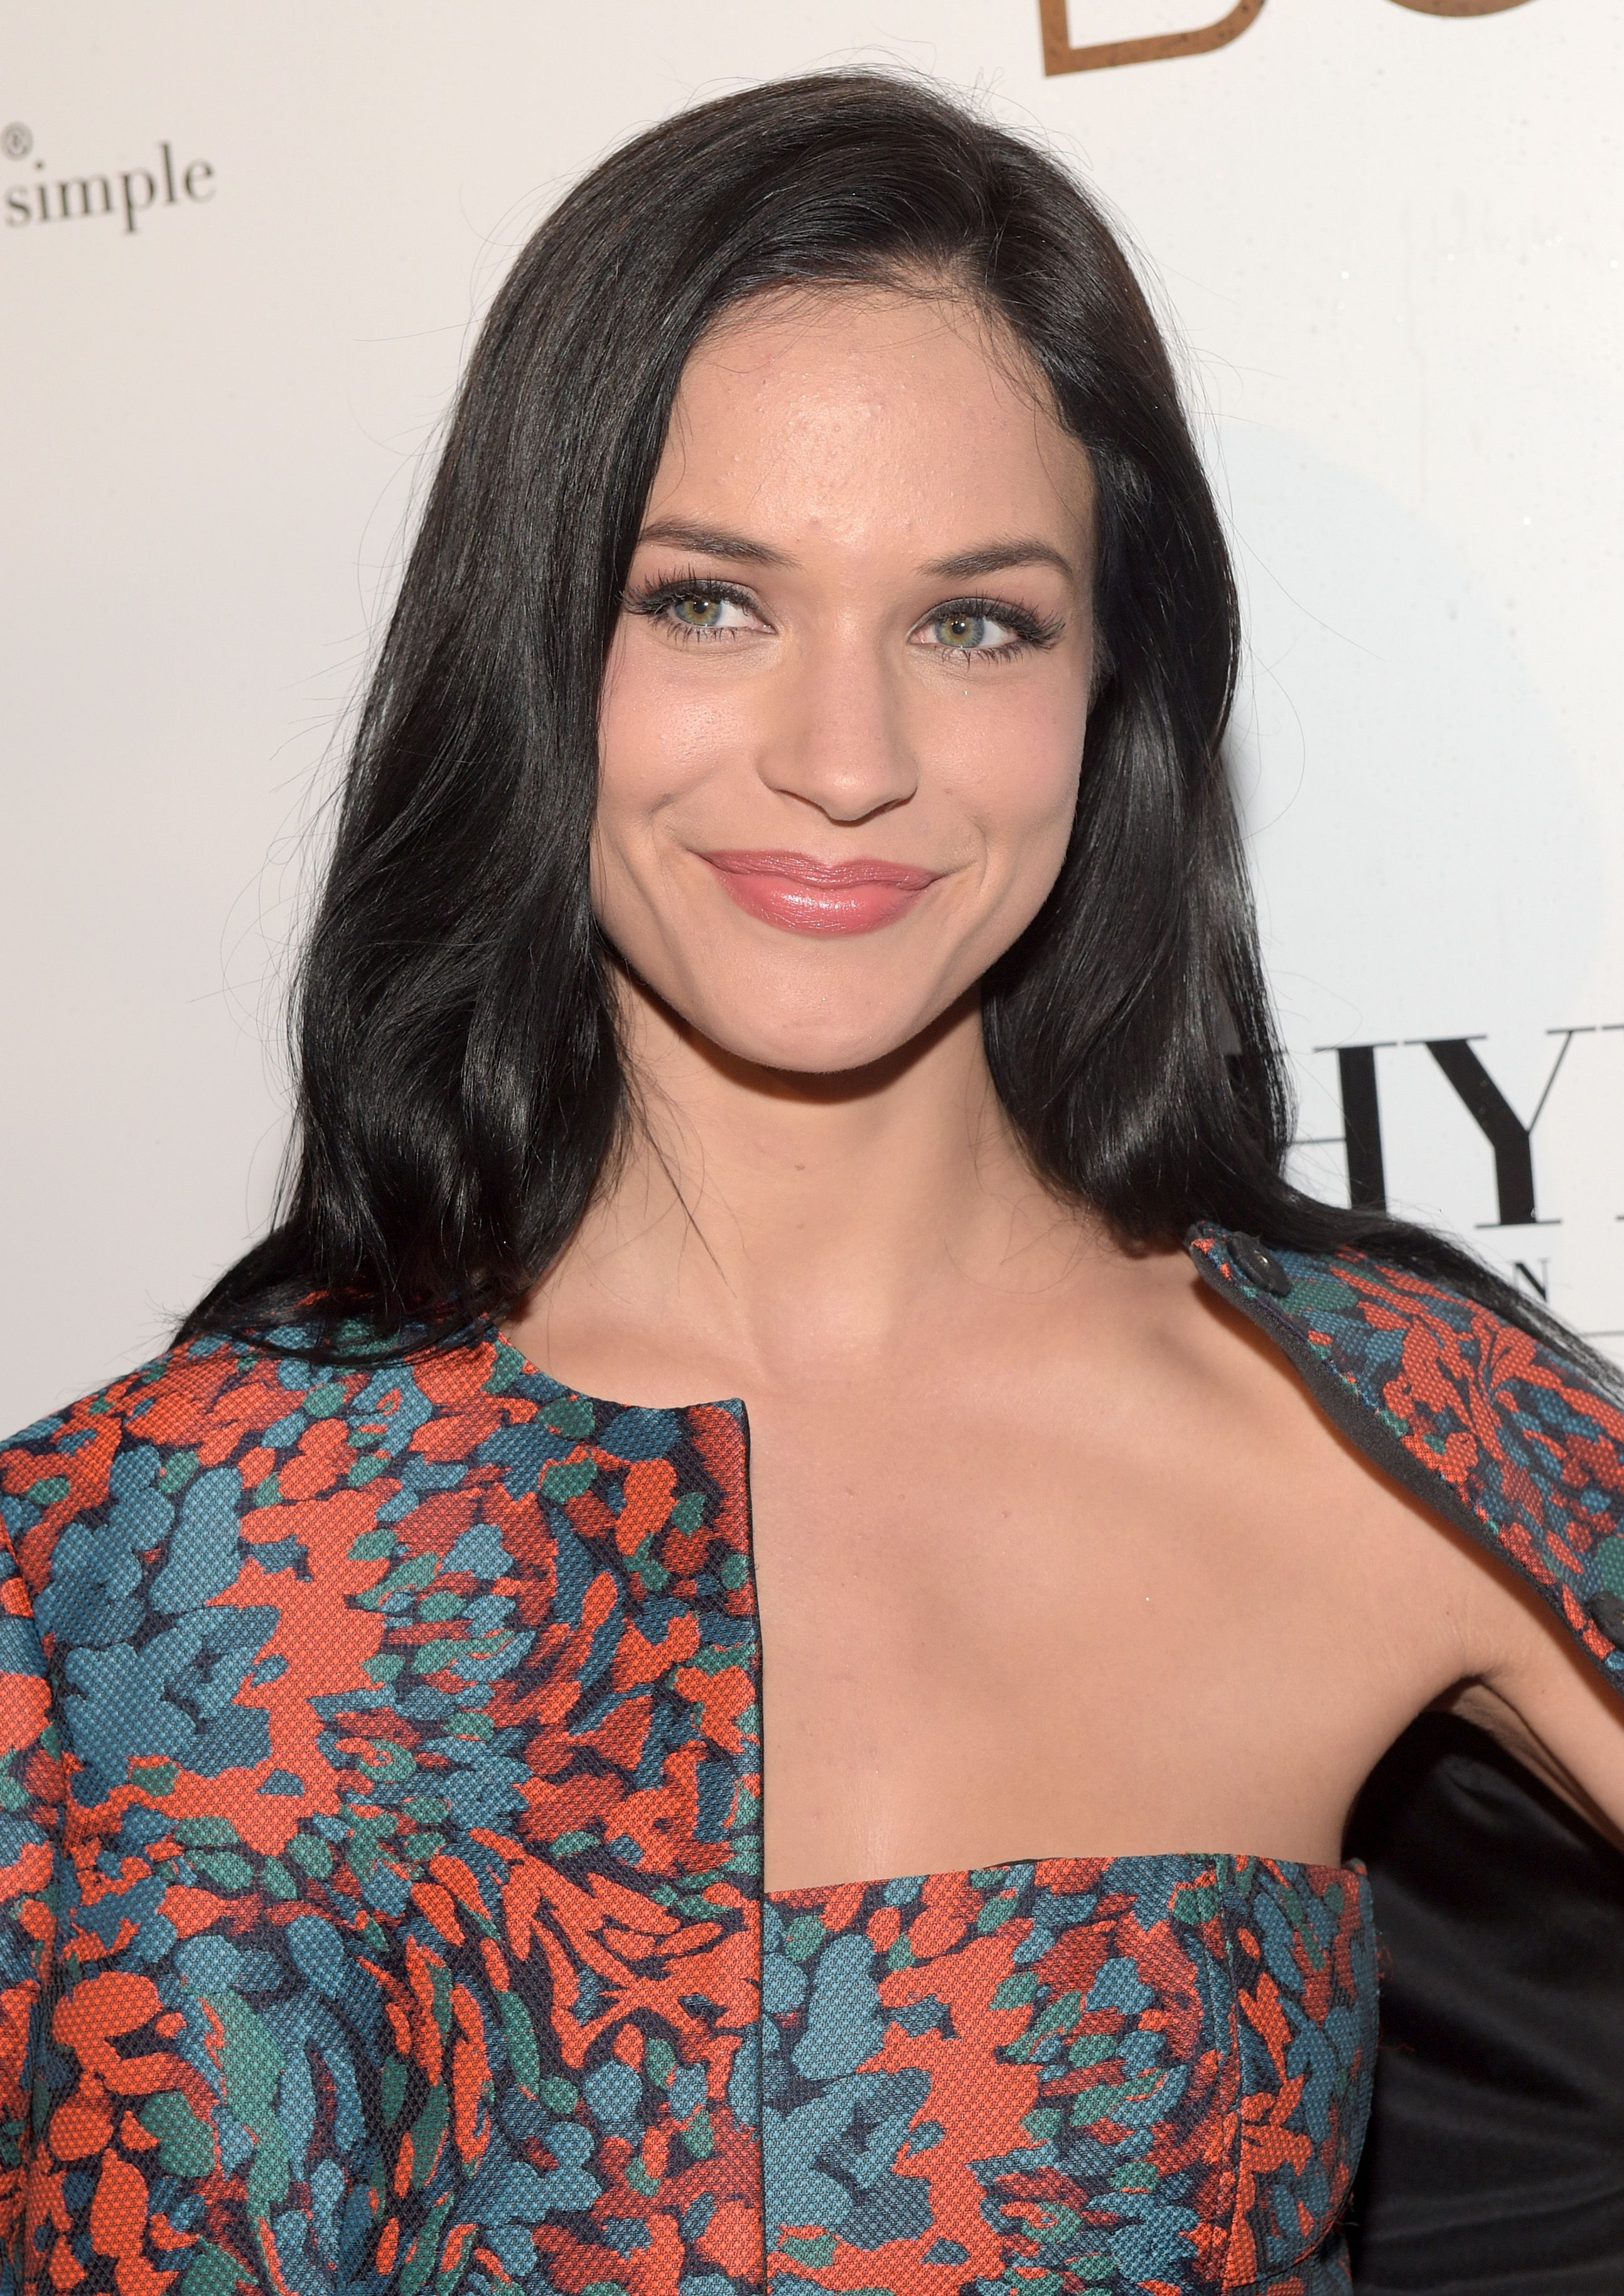 Celebrites Alexis Knapp naked (85 photo), Twitter